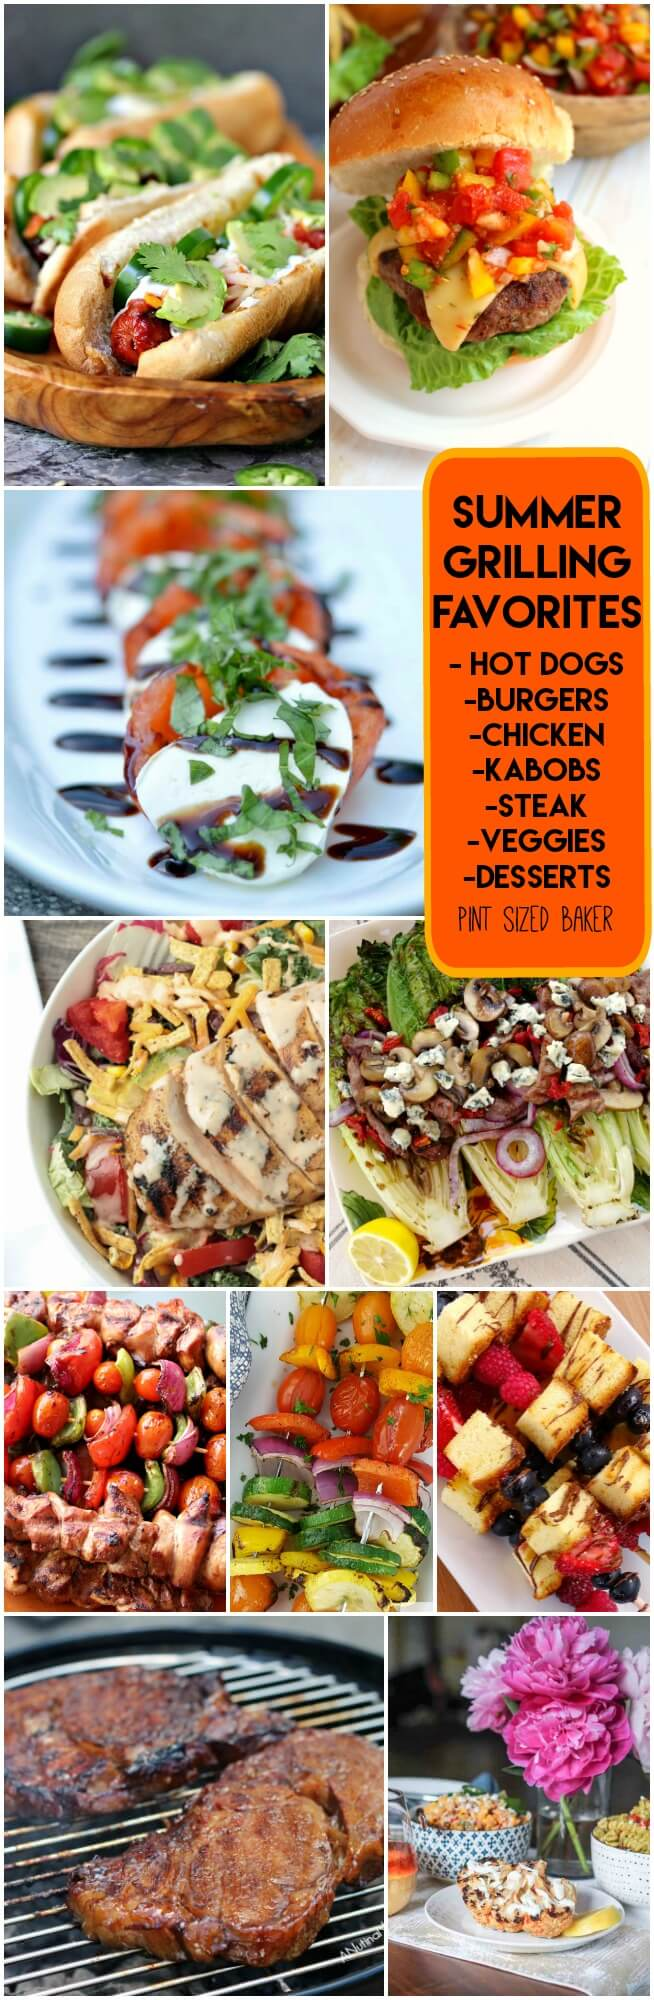 Summer Grilling Favorites! Ten great recipes you can make on the grill. Hot Dogs, Burgers, Veggies, Chicken and even dessert!